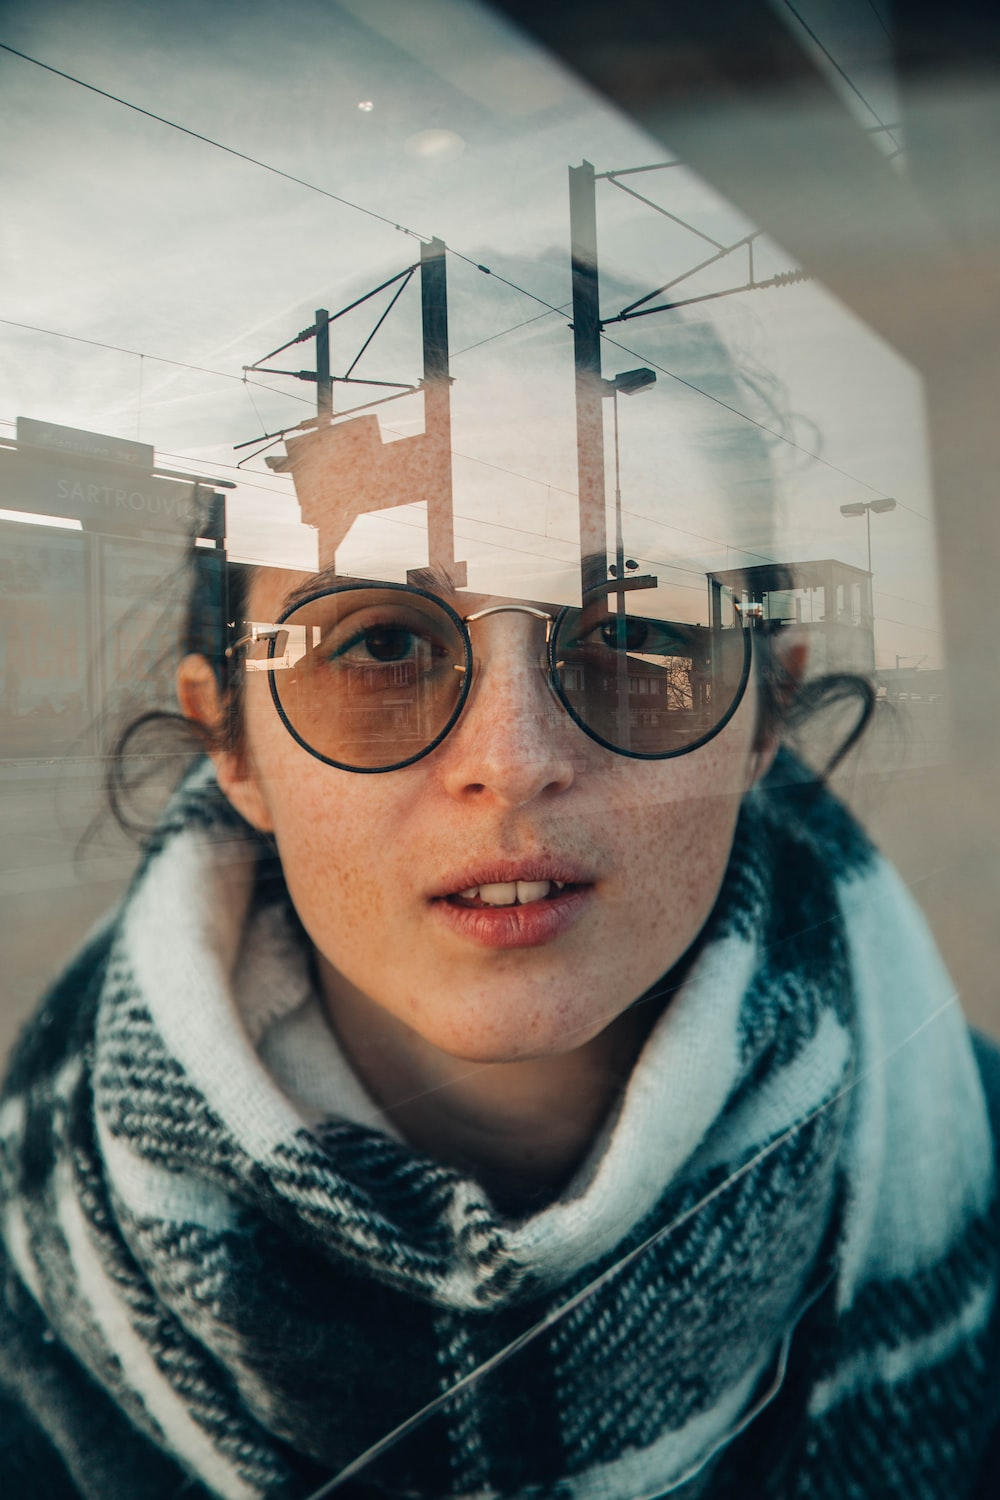 woman wearing sunglasses inside glass panele